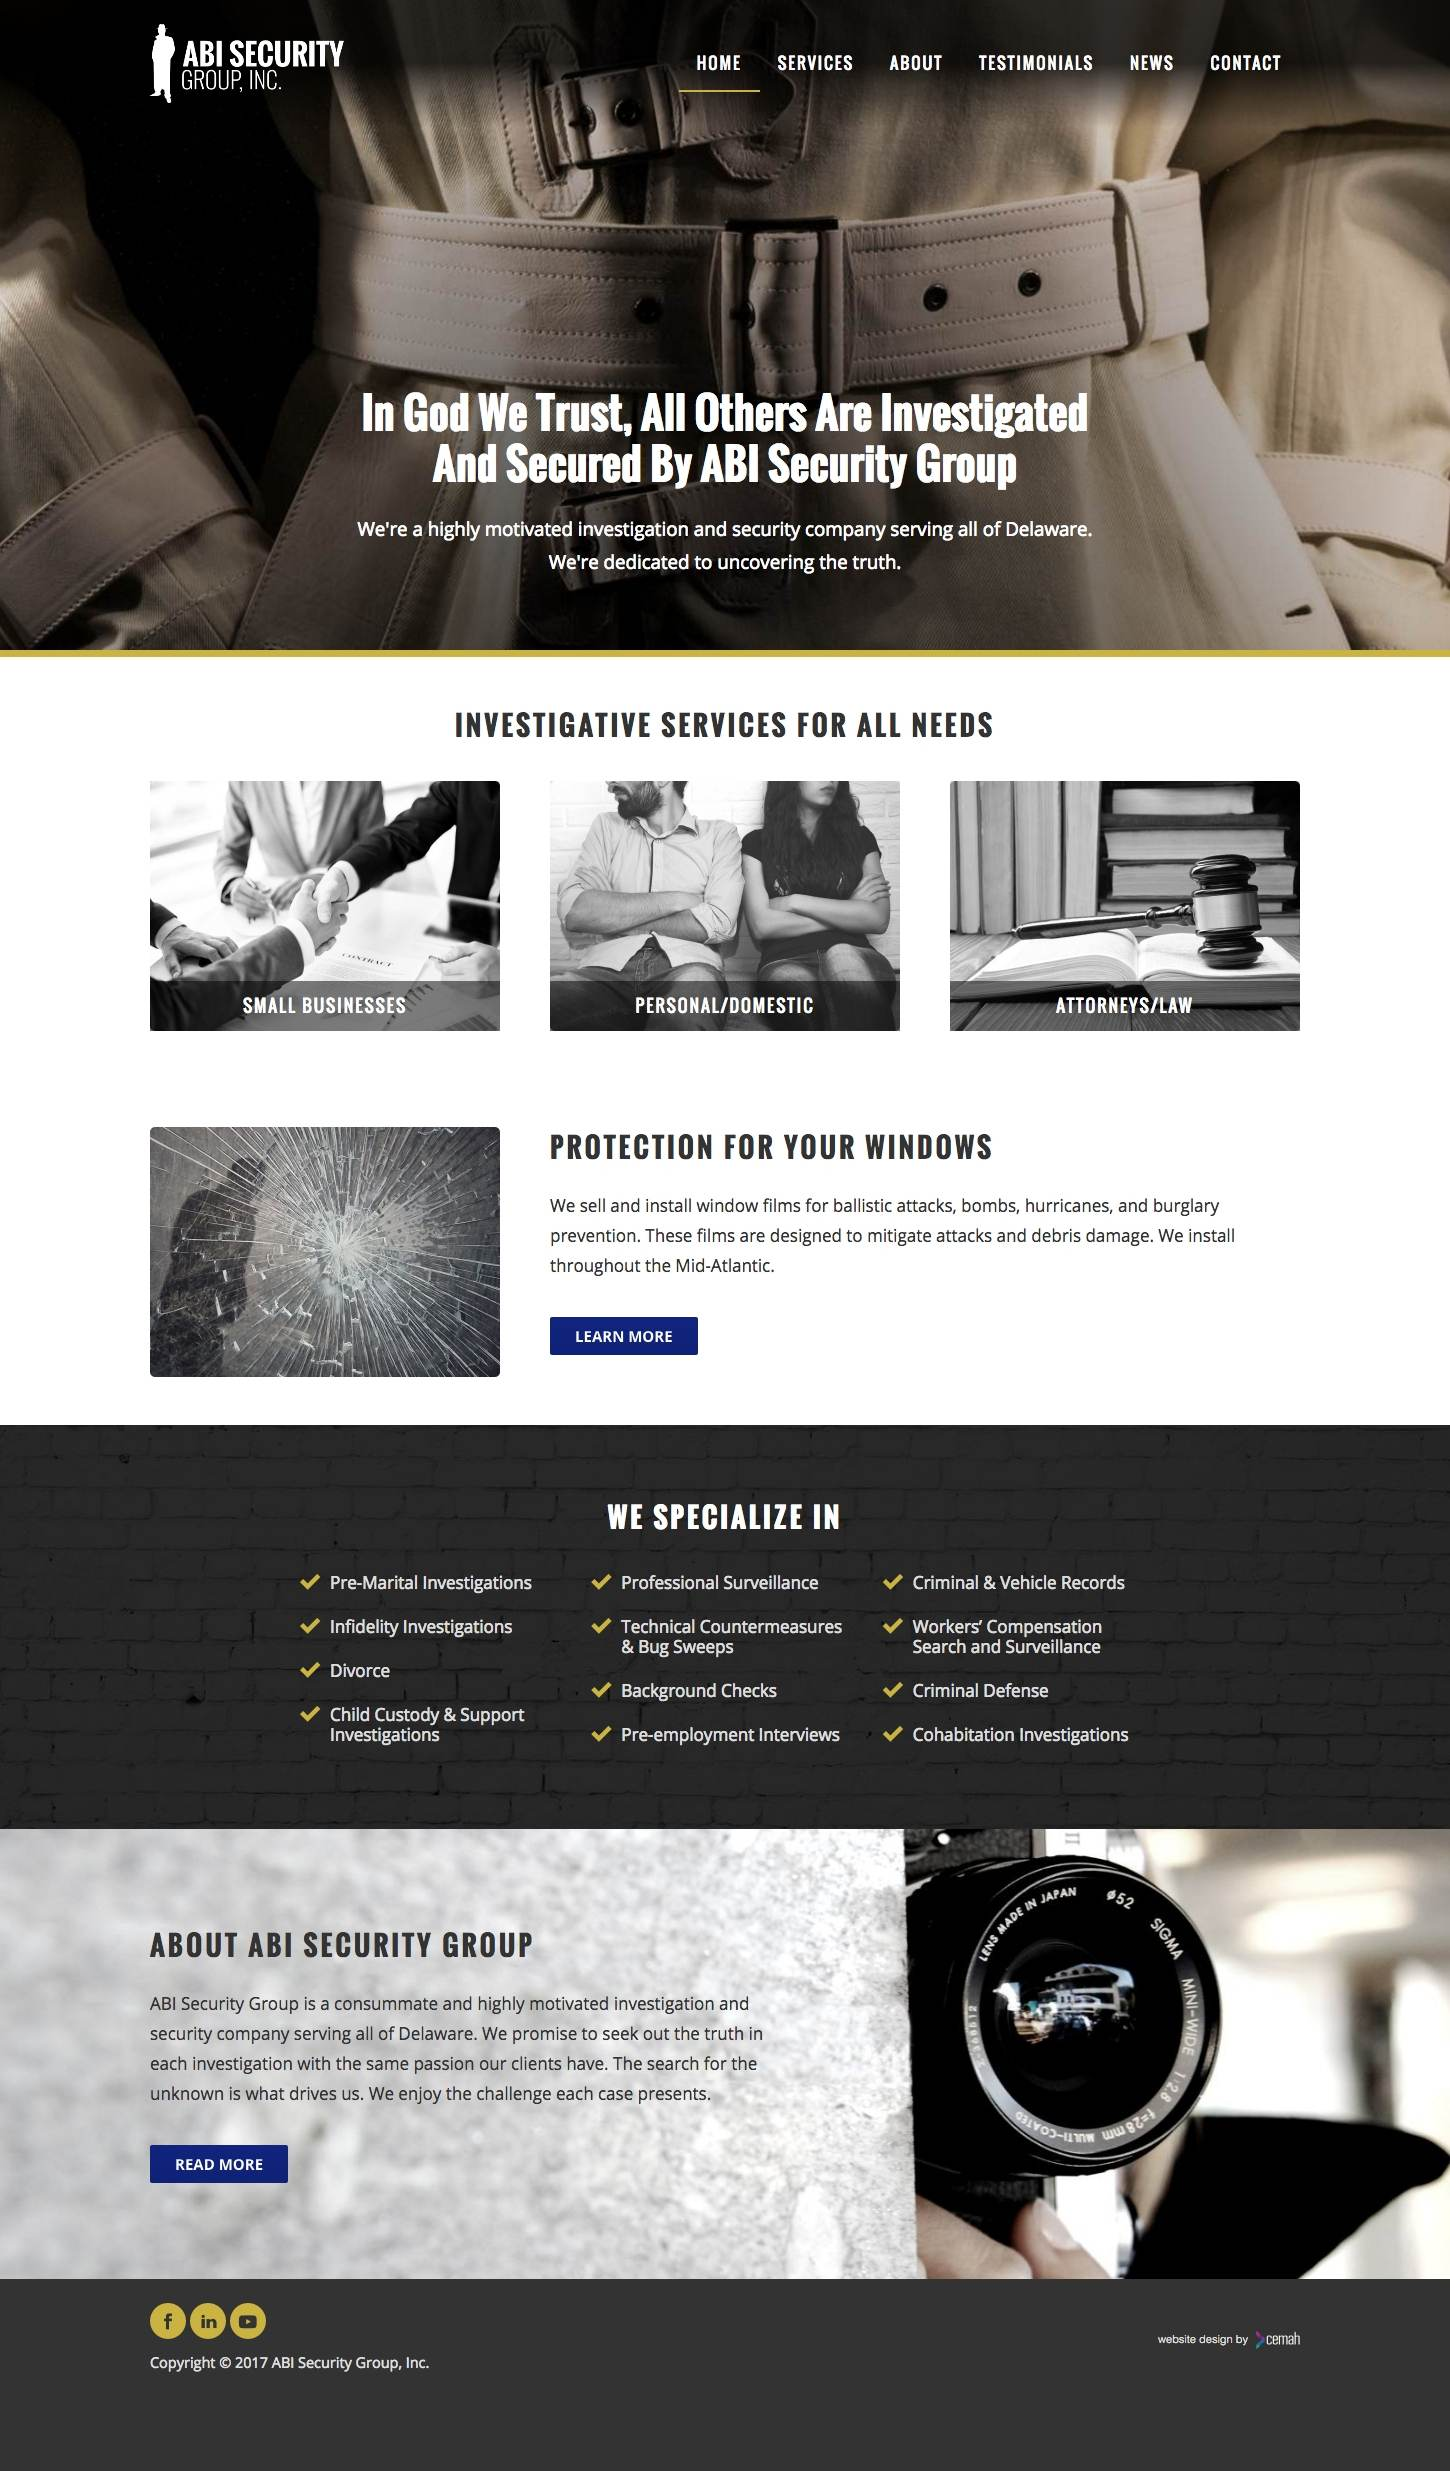 Private investigator website design layout featuring the homepage for an investigation small business